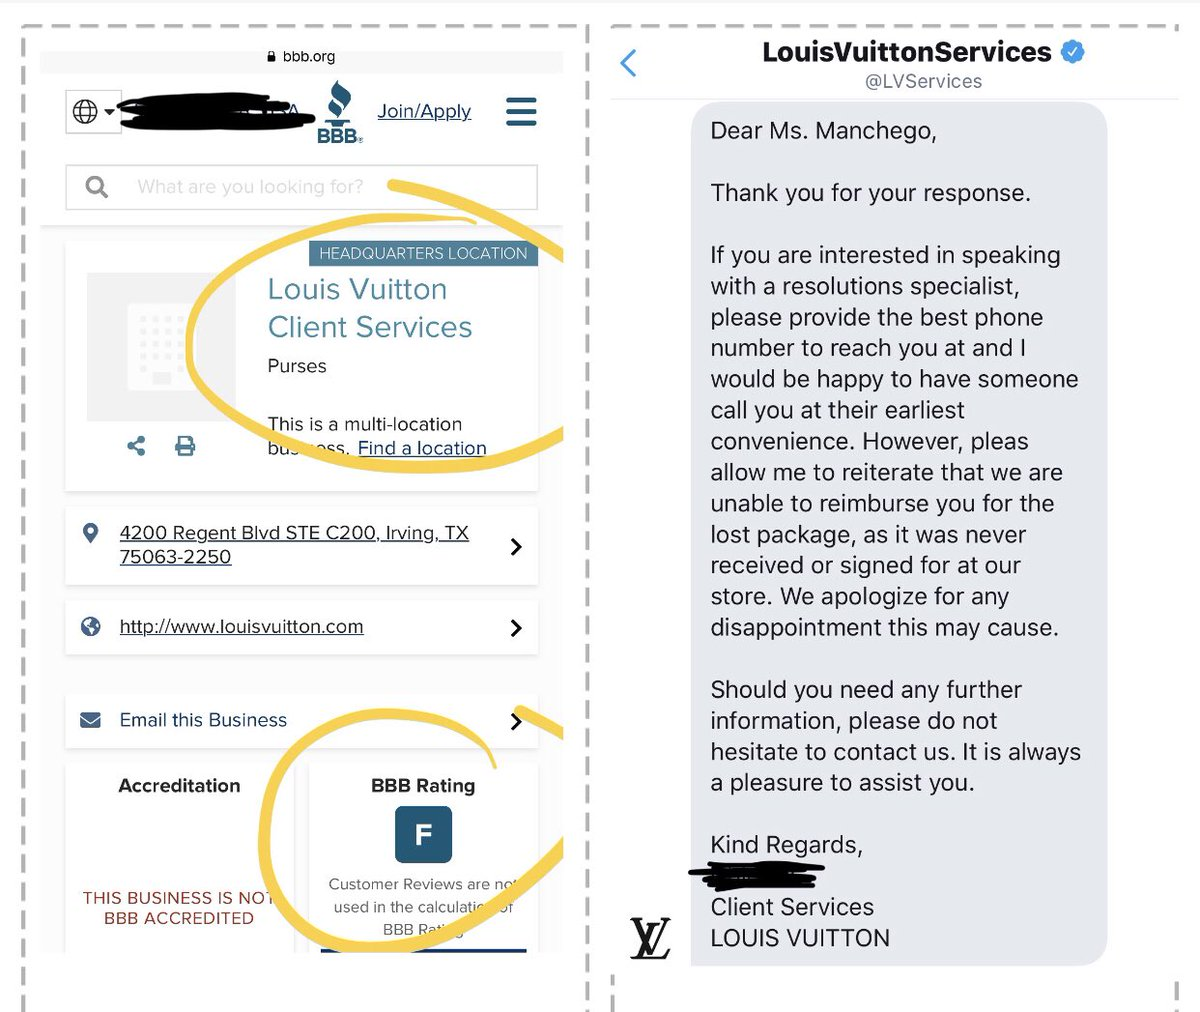 Consider the type of treatment you'll get from @LVServices  @LouisVuitton when they sell you defective product that breaks in 6mos, they tell you to ship it so they can see it, but it gets lost #advocacy #SaturdayThoughts #ItsNotIllegalBut #InMyWildestDreams #isthislegal @USPS